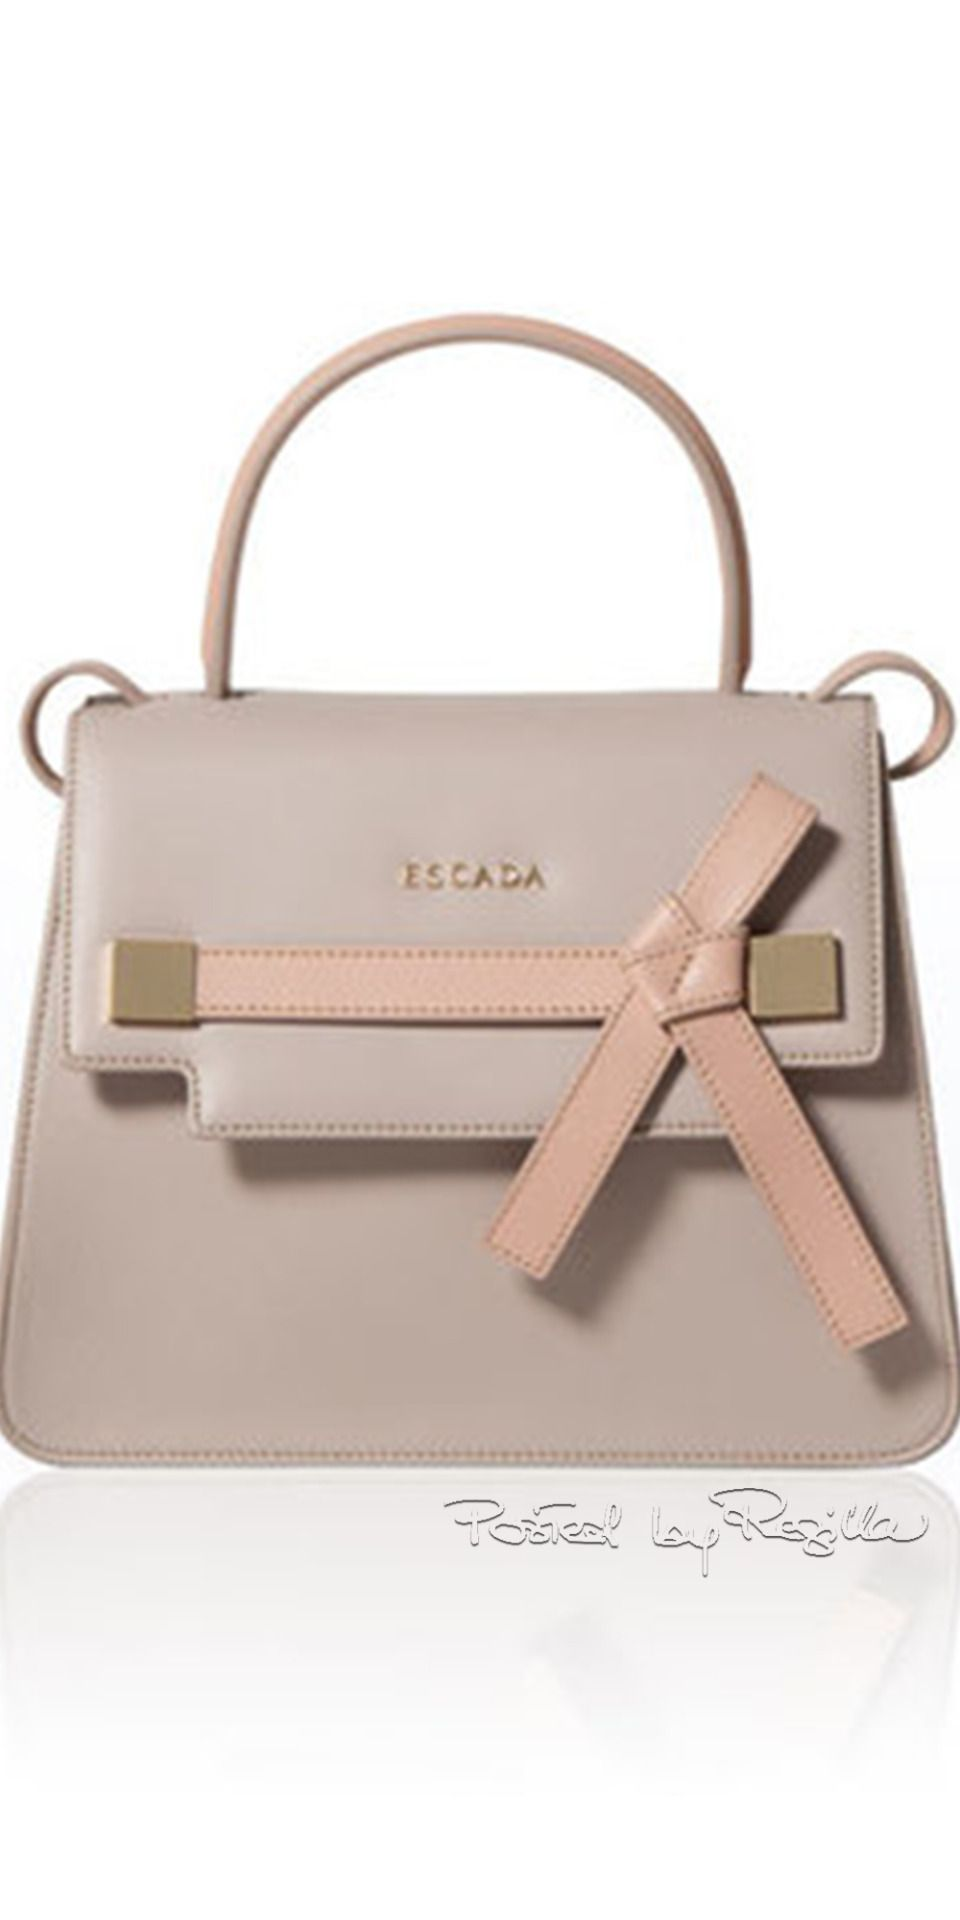 Escada Small Handbag I Am Not Into Bows But This One Is Rather Cute